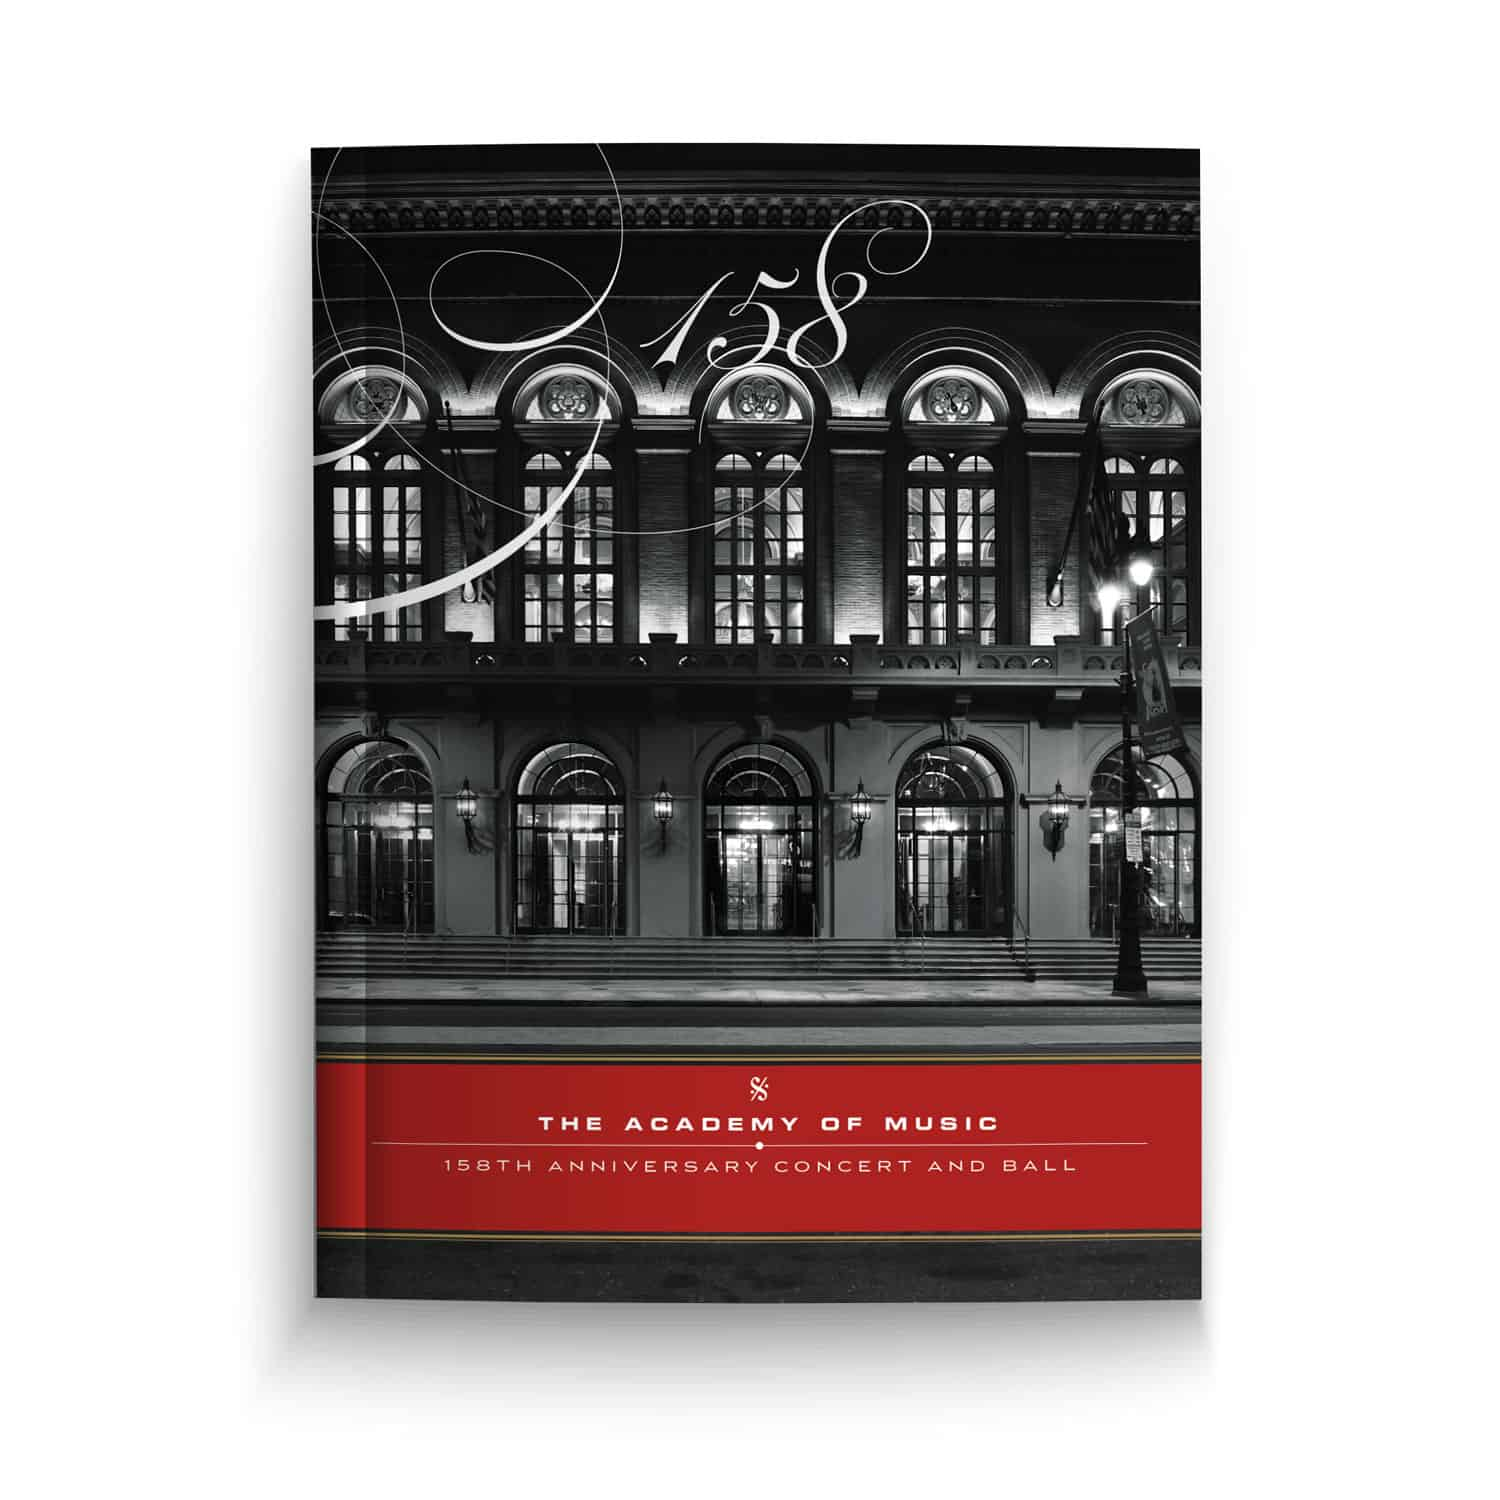 Academy of Music, 158th Anniversary Concert and Ball Program Book